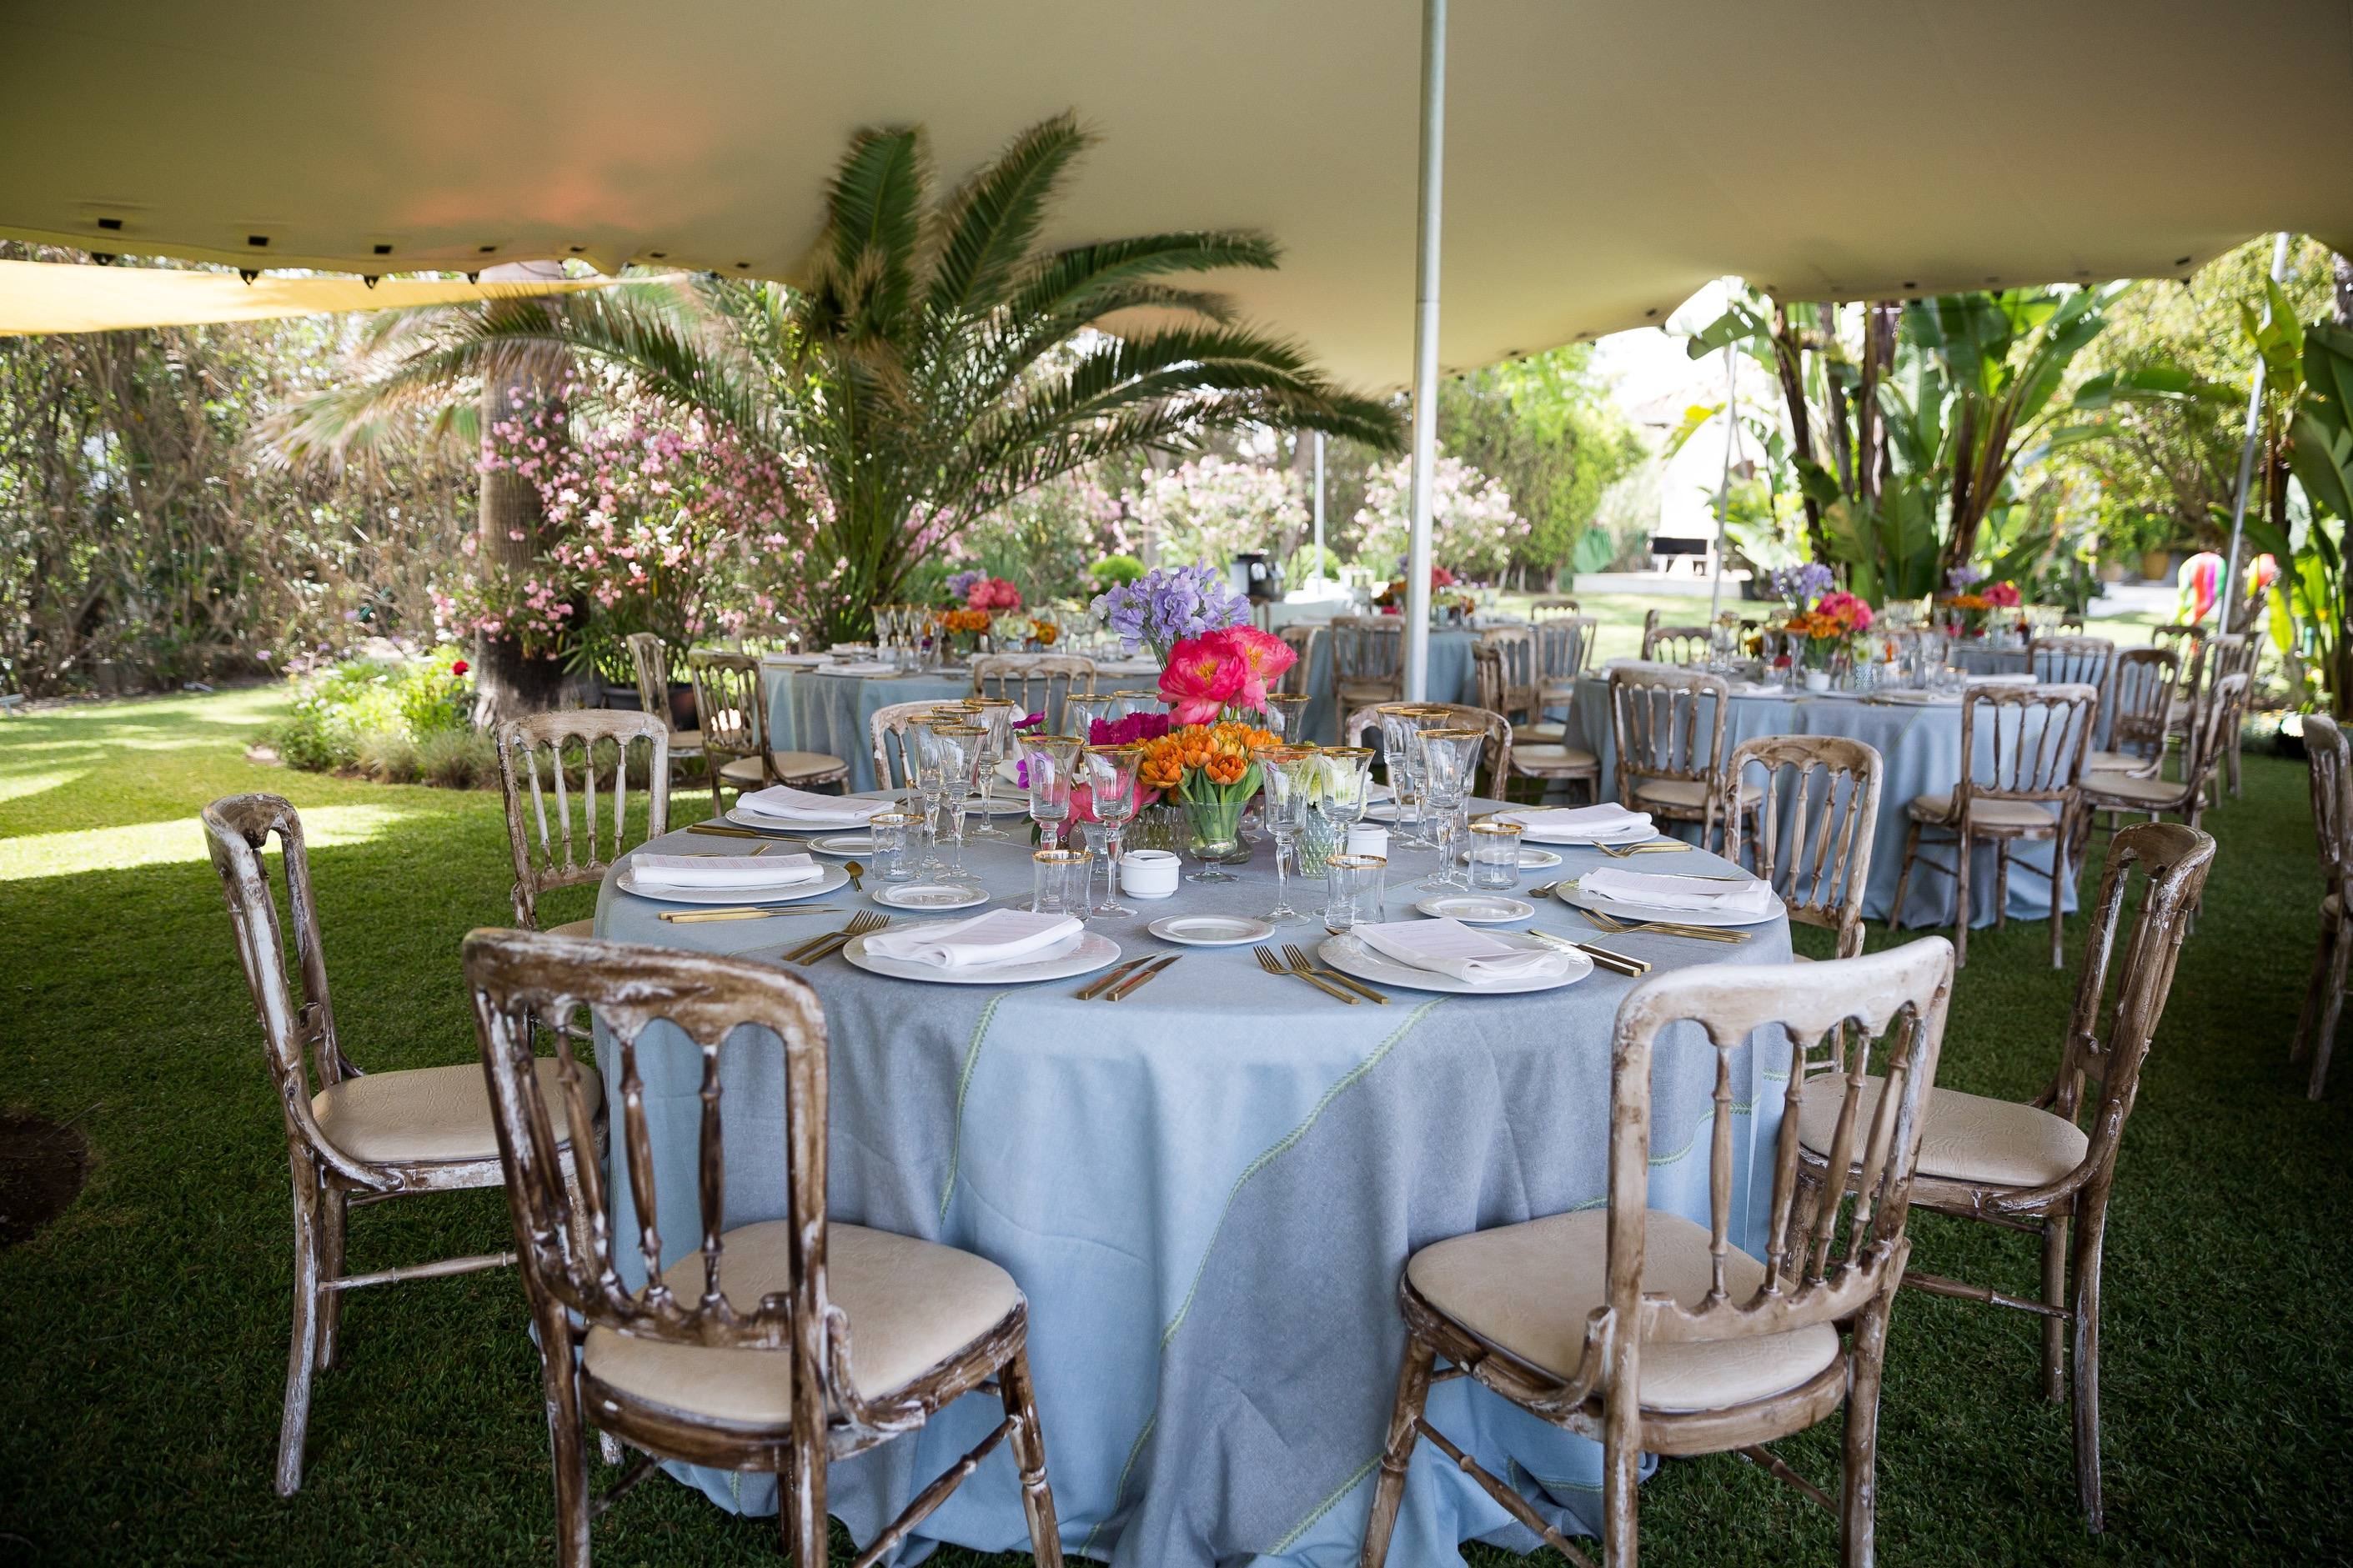 Si-Quiero-Wedding-Planners-Marbella-Isabel-Manolo-097